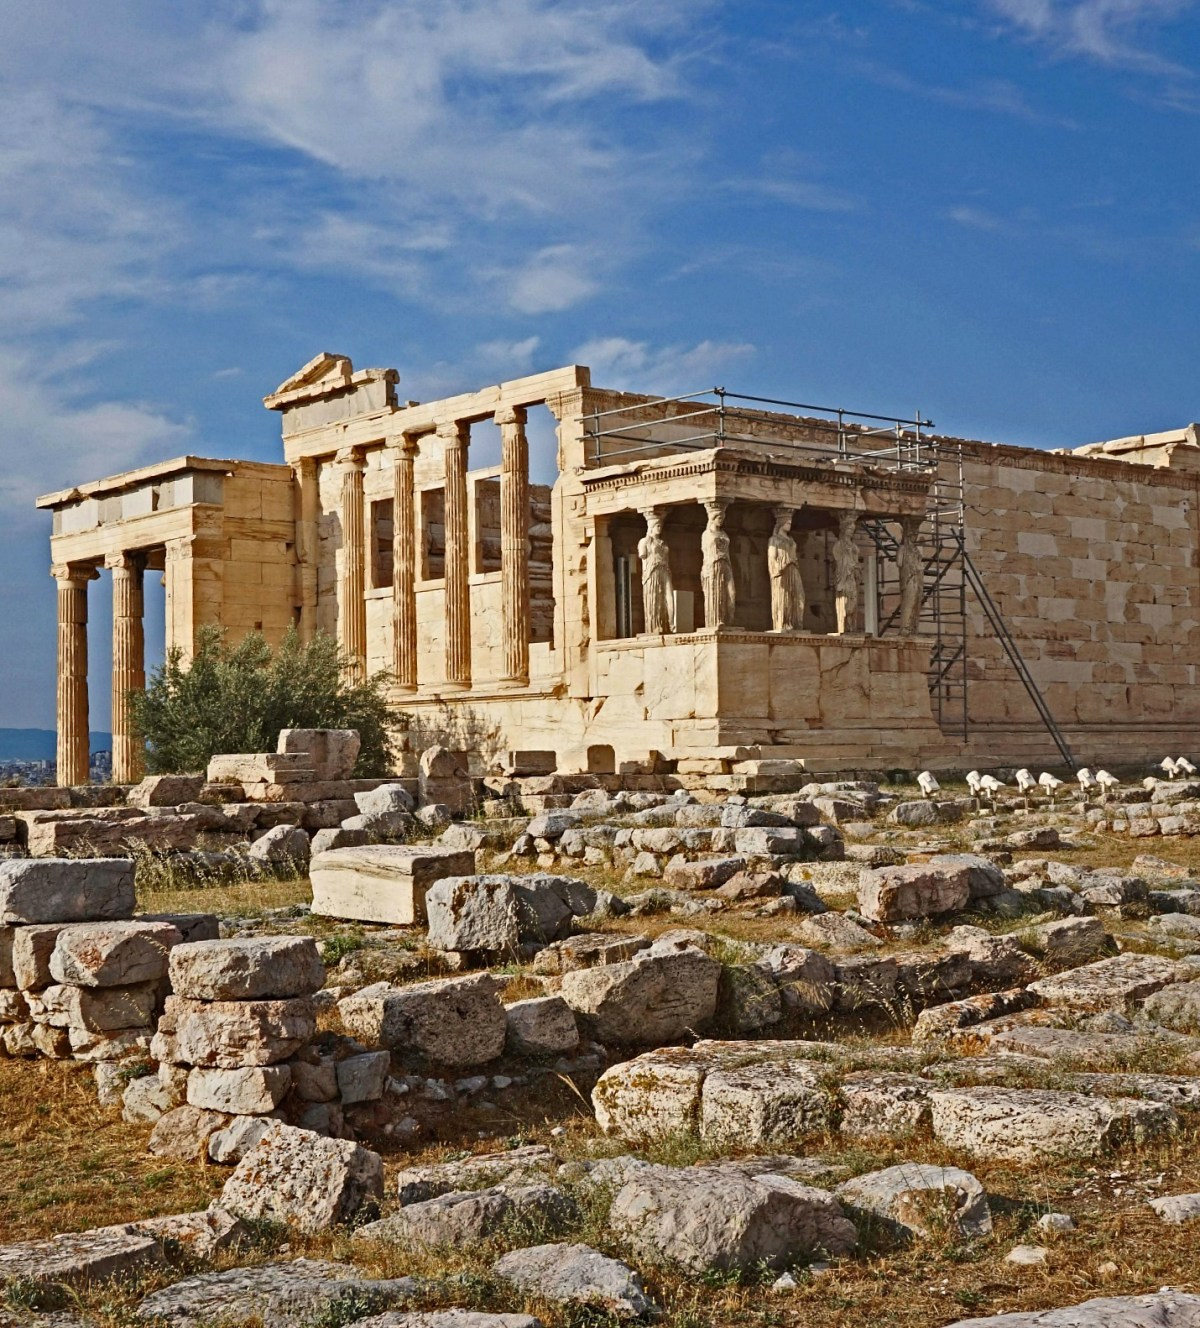 The Temple of Athena Nike is a temple on the Acropolis of Athens, dedicated to the goddess Athena Nike.